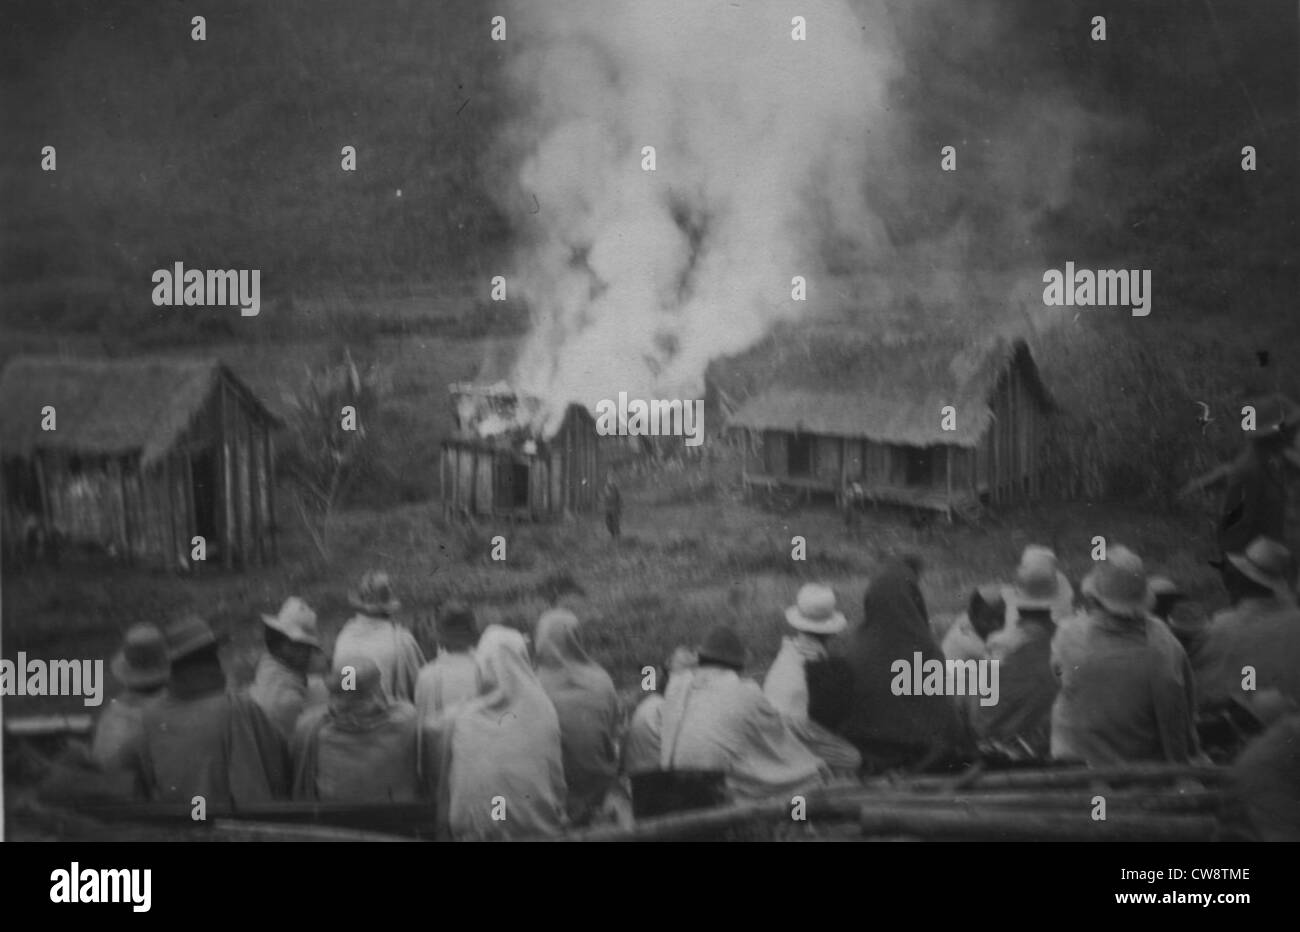 Repression, villages burned by the army - Stock Image